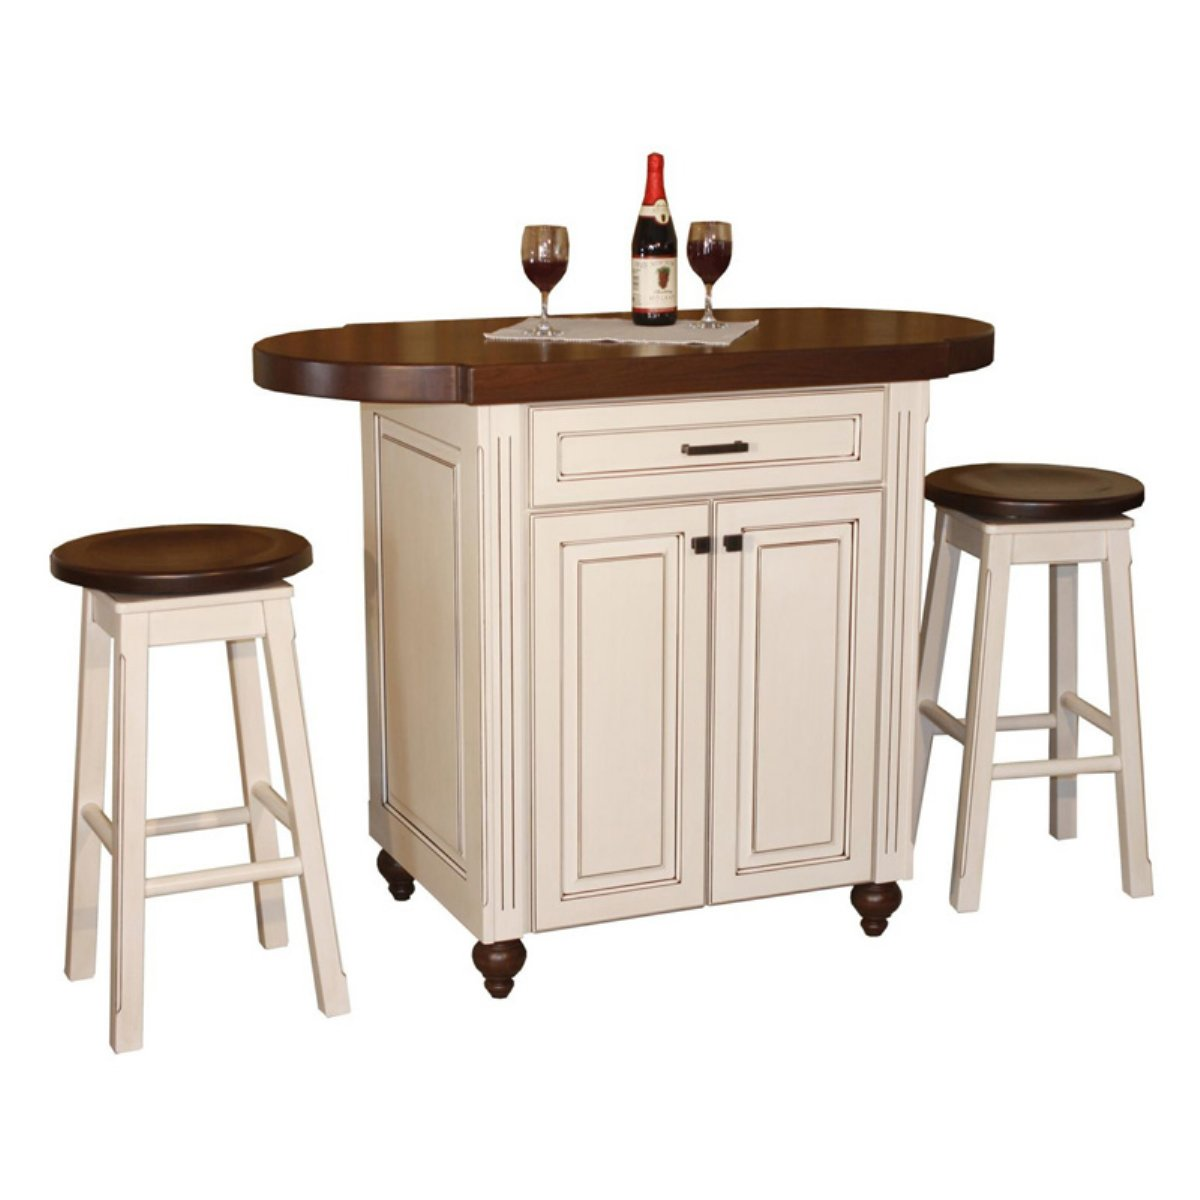 tall kitchen tables with bar stools tall kitchen chairs Tall kitchen tables with bar stools Tall Kitchen Chairs Black And White Table Photo Al